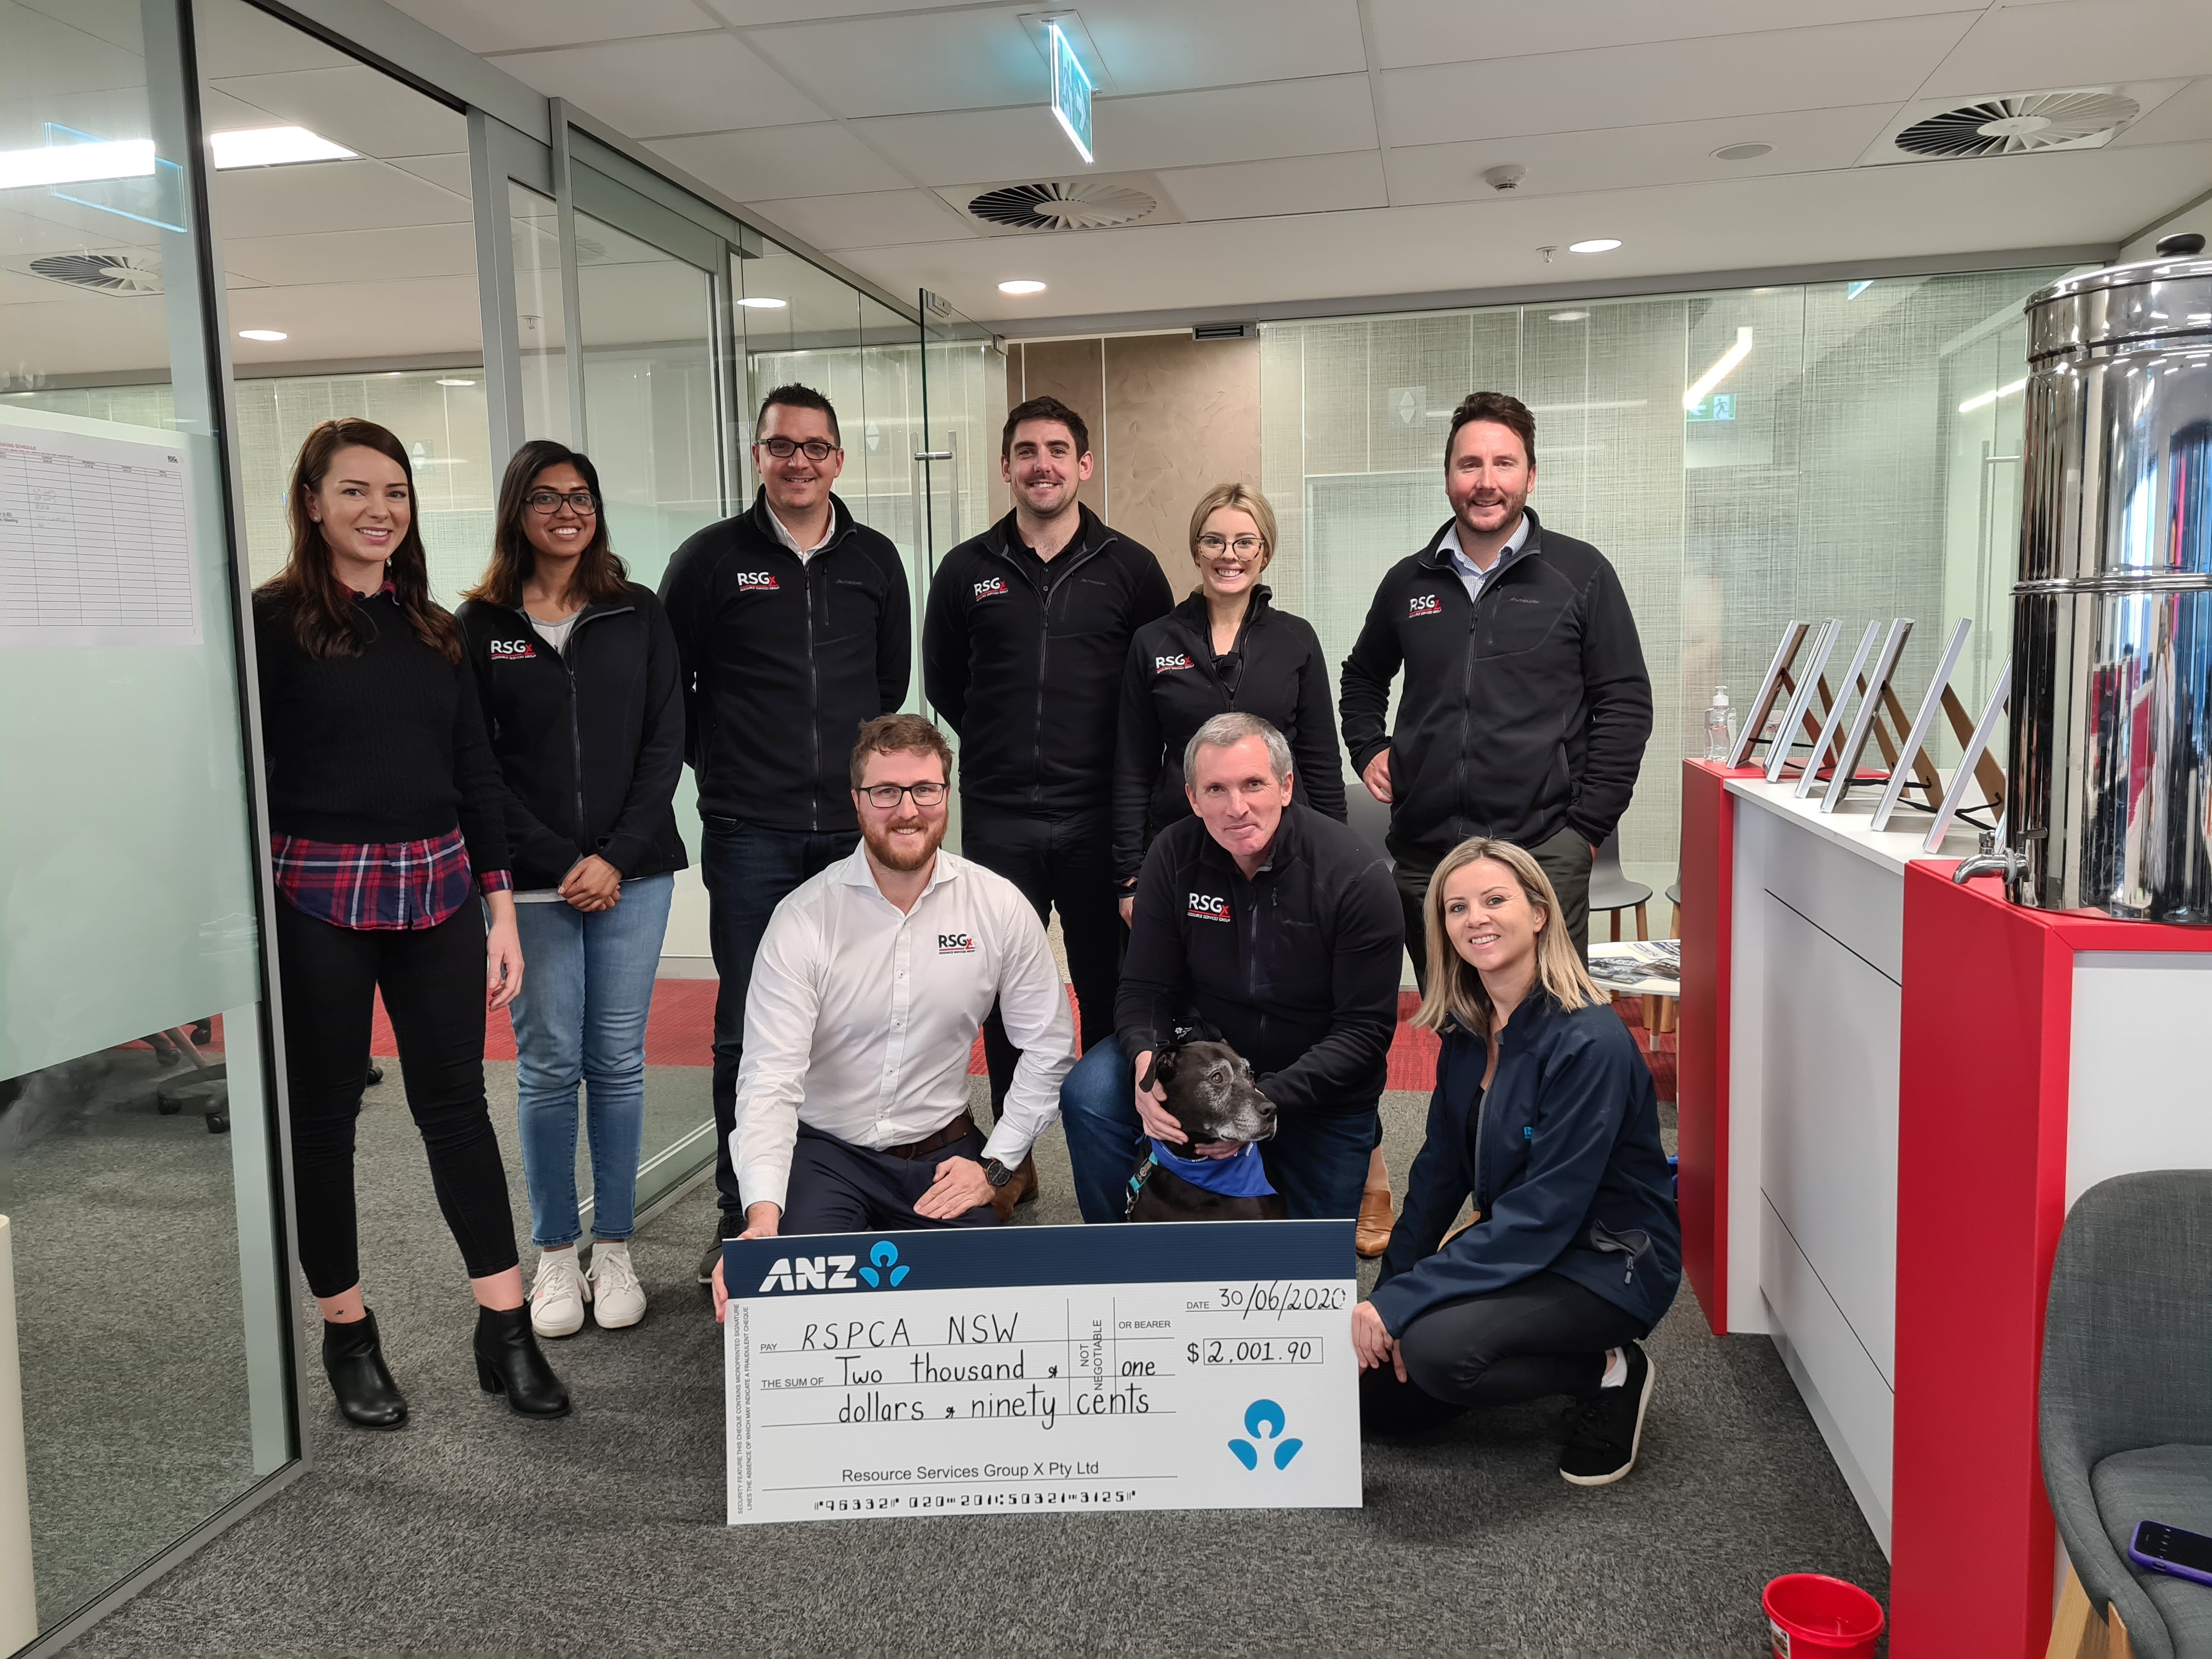 RSGx raises funds for RSPCA NSW